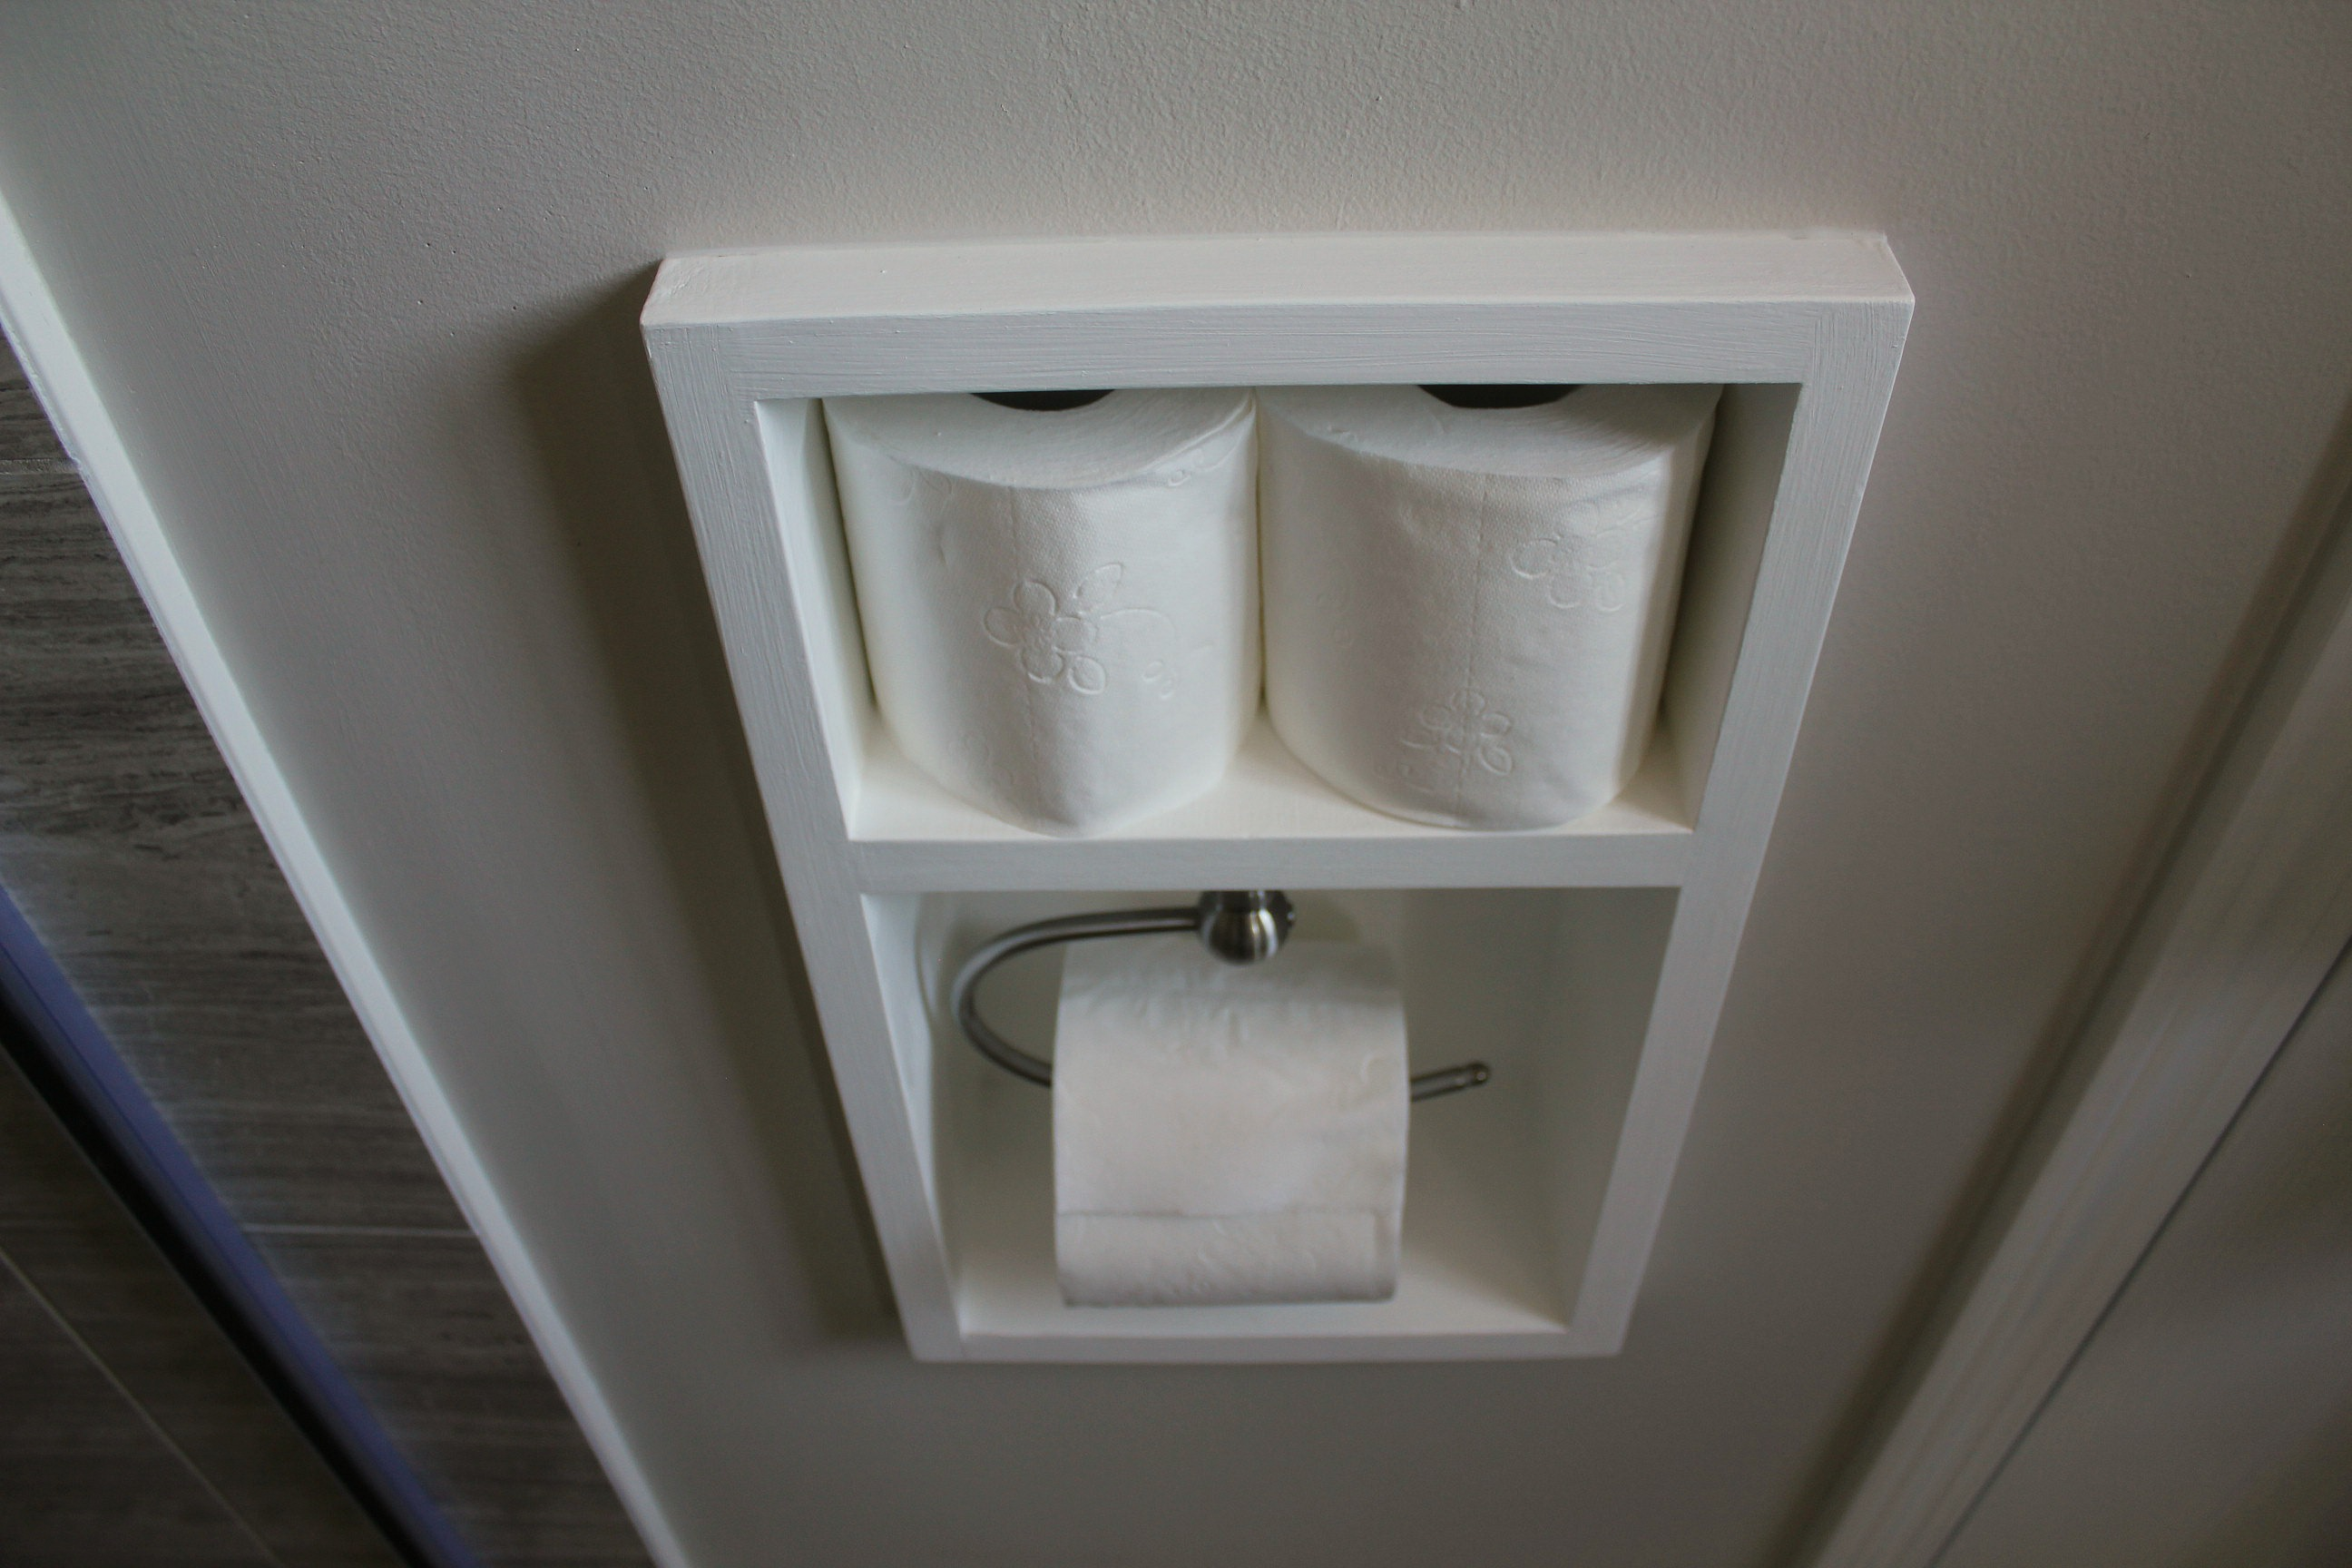 Recessed Toilet Paper Holder For Large Rolls Turtles And Tails Recessed Toilet Paper Holder Aka